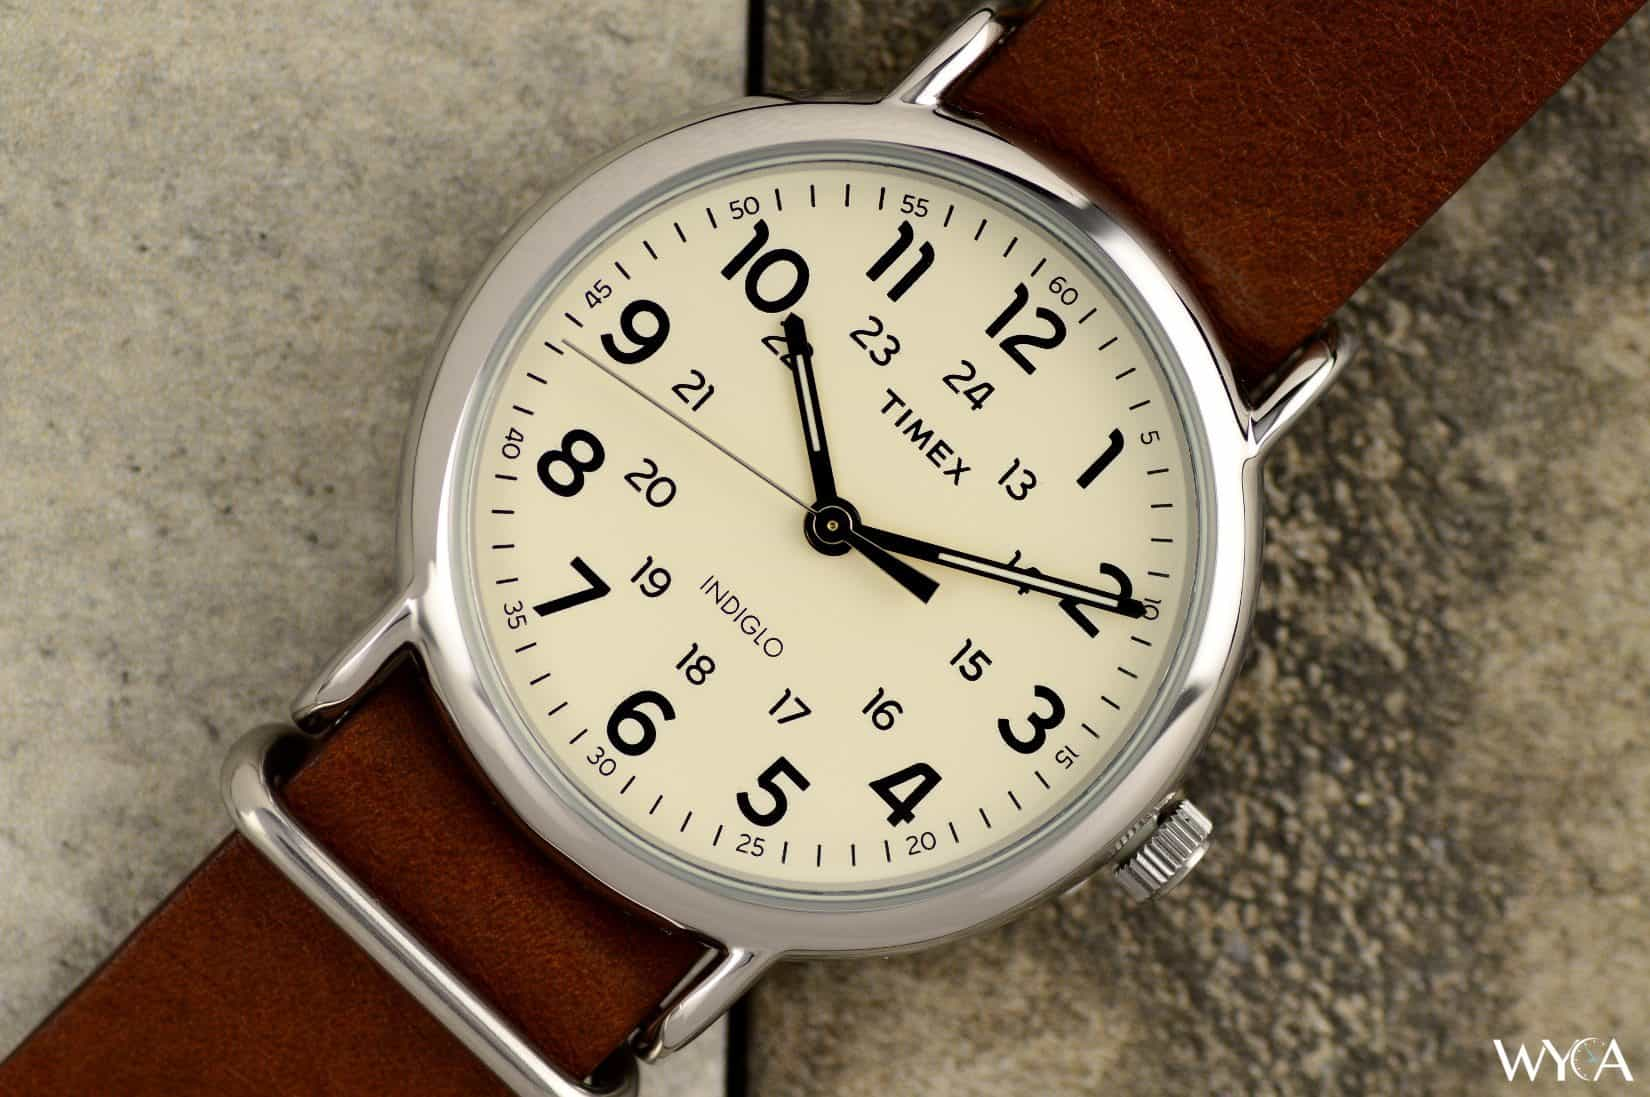 Timex: The Story & History Behind an American Watchmaking Icon Clone